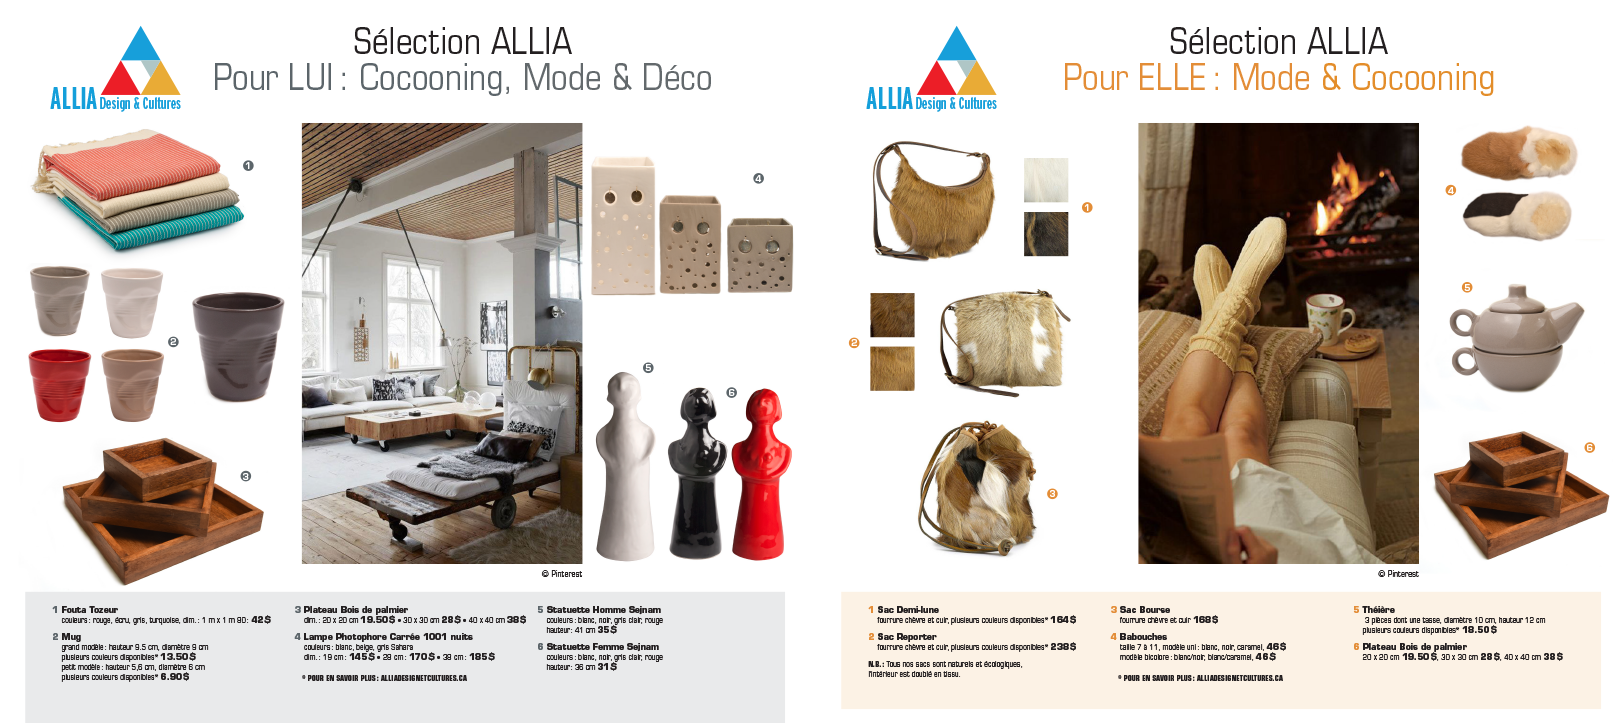 Agitatrice de solutions - Projet Allia Design & Cultures - Branding - Web - Planches tendances - Presse Magazine